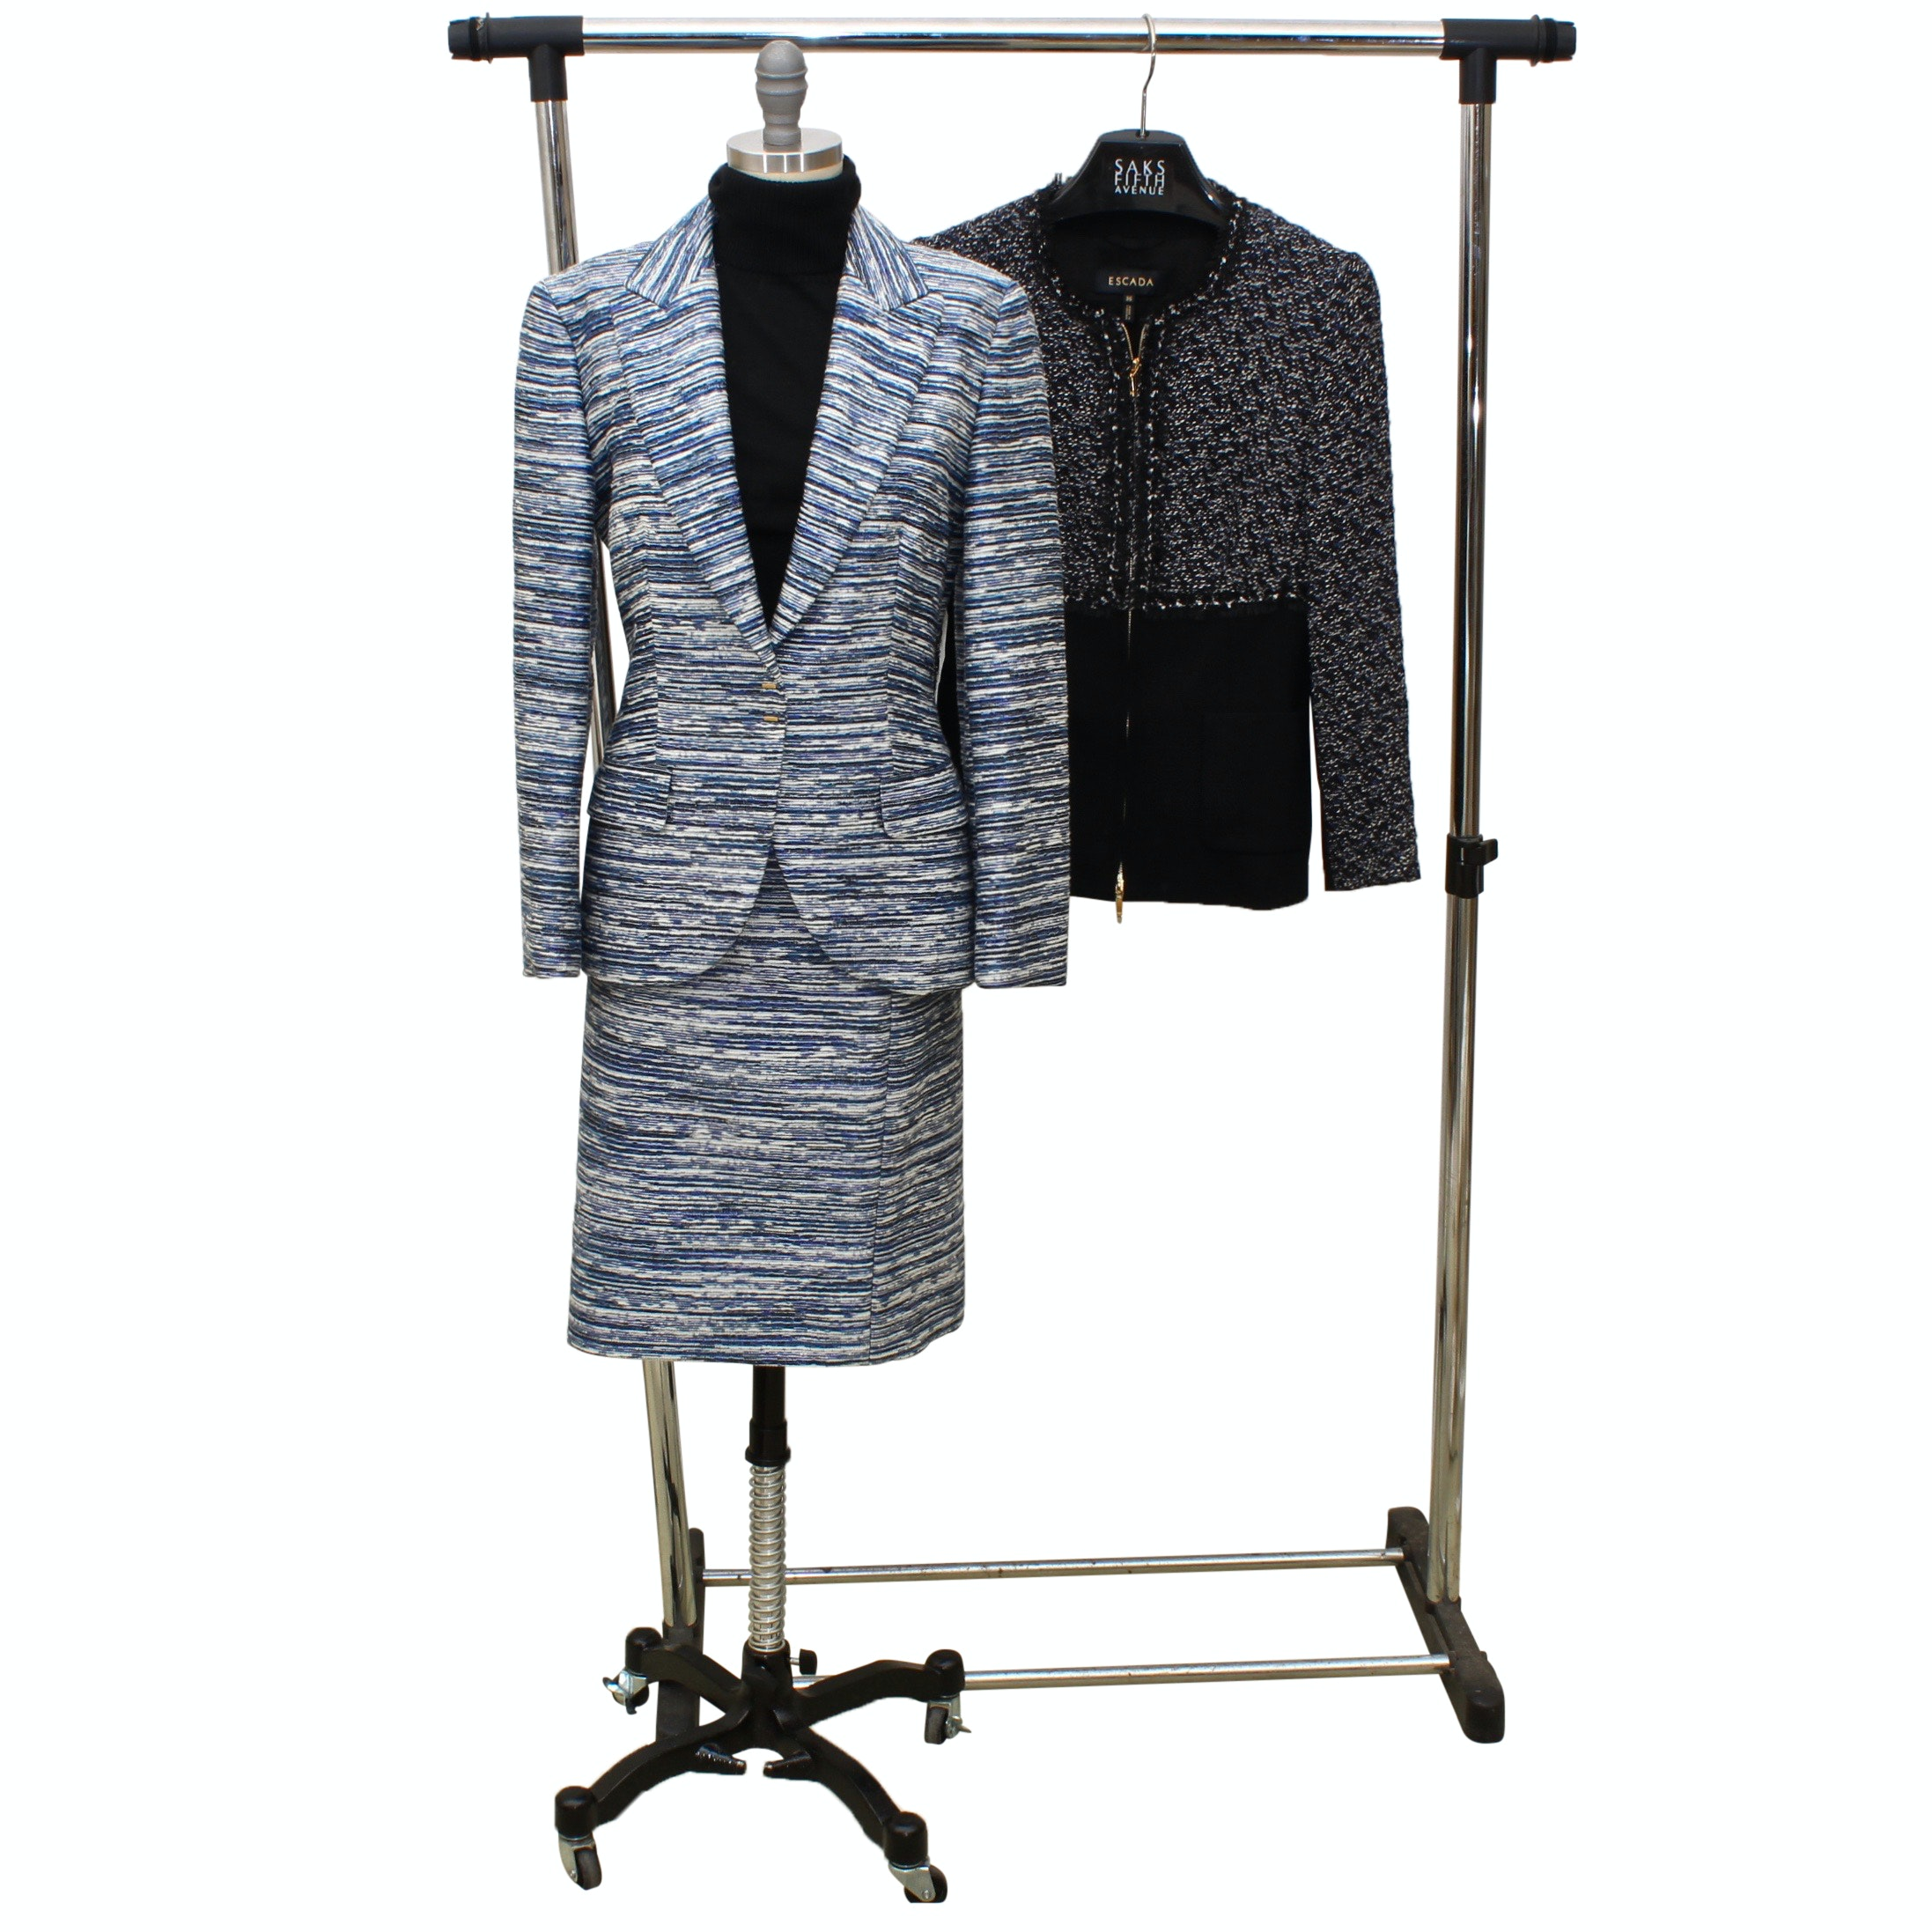 Women's Suit Jackets and Skirt by Escada